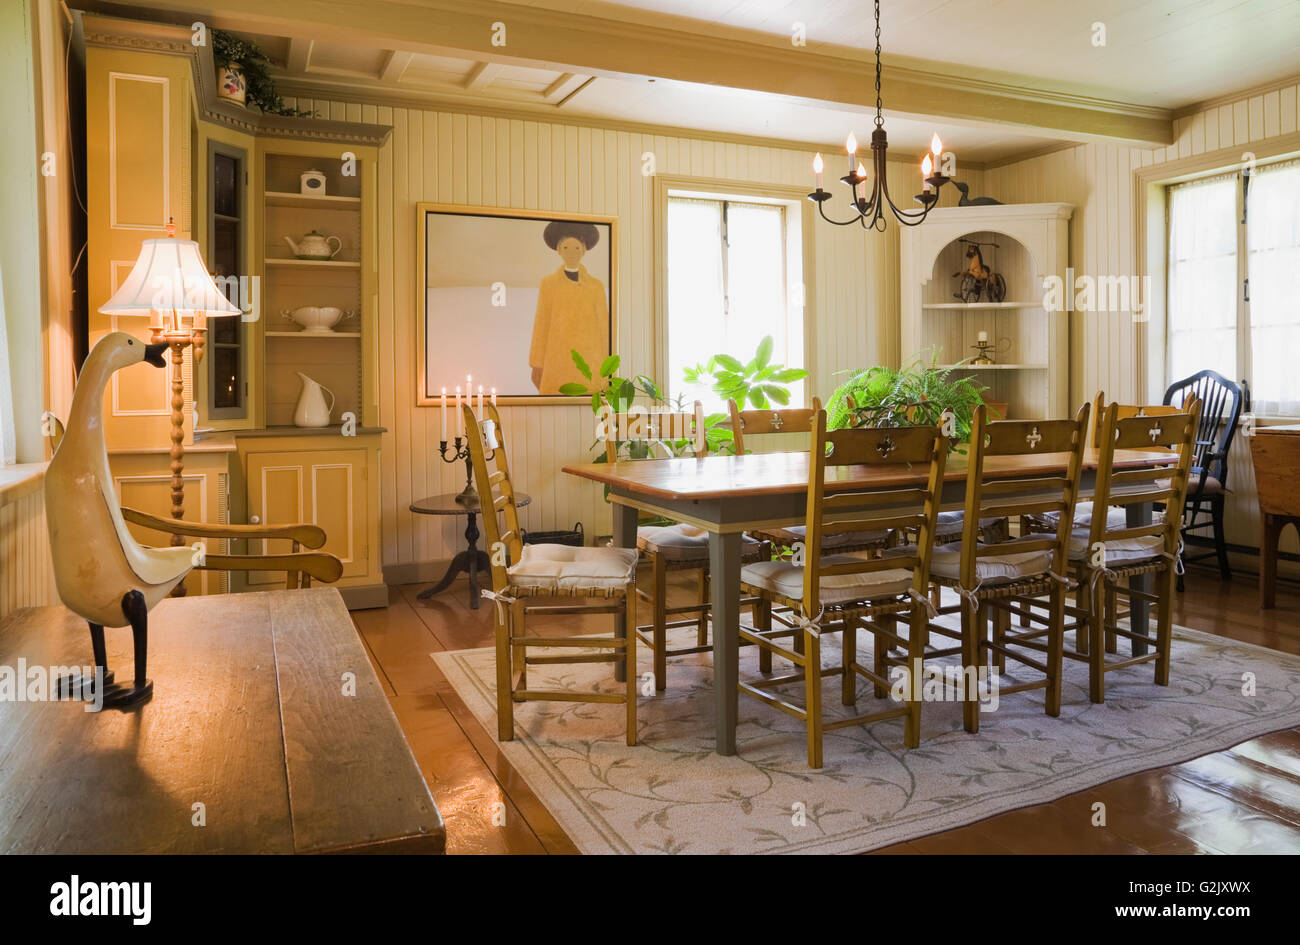 Antique wooden table chairs in dining room inside old reconstructed antique wooden table chairs in dining room inside old reconstructed 1850s cottage style log home quebec canada this image watchthetrailerfo